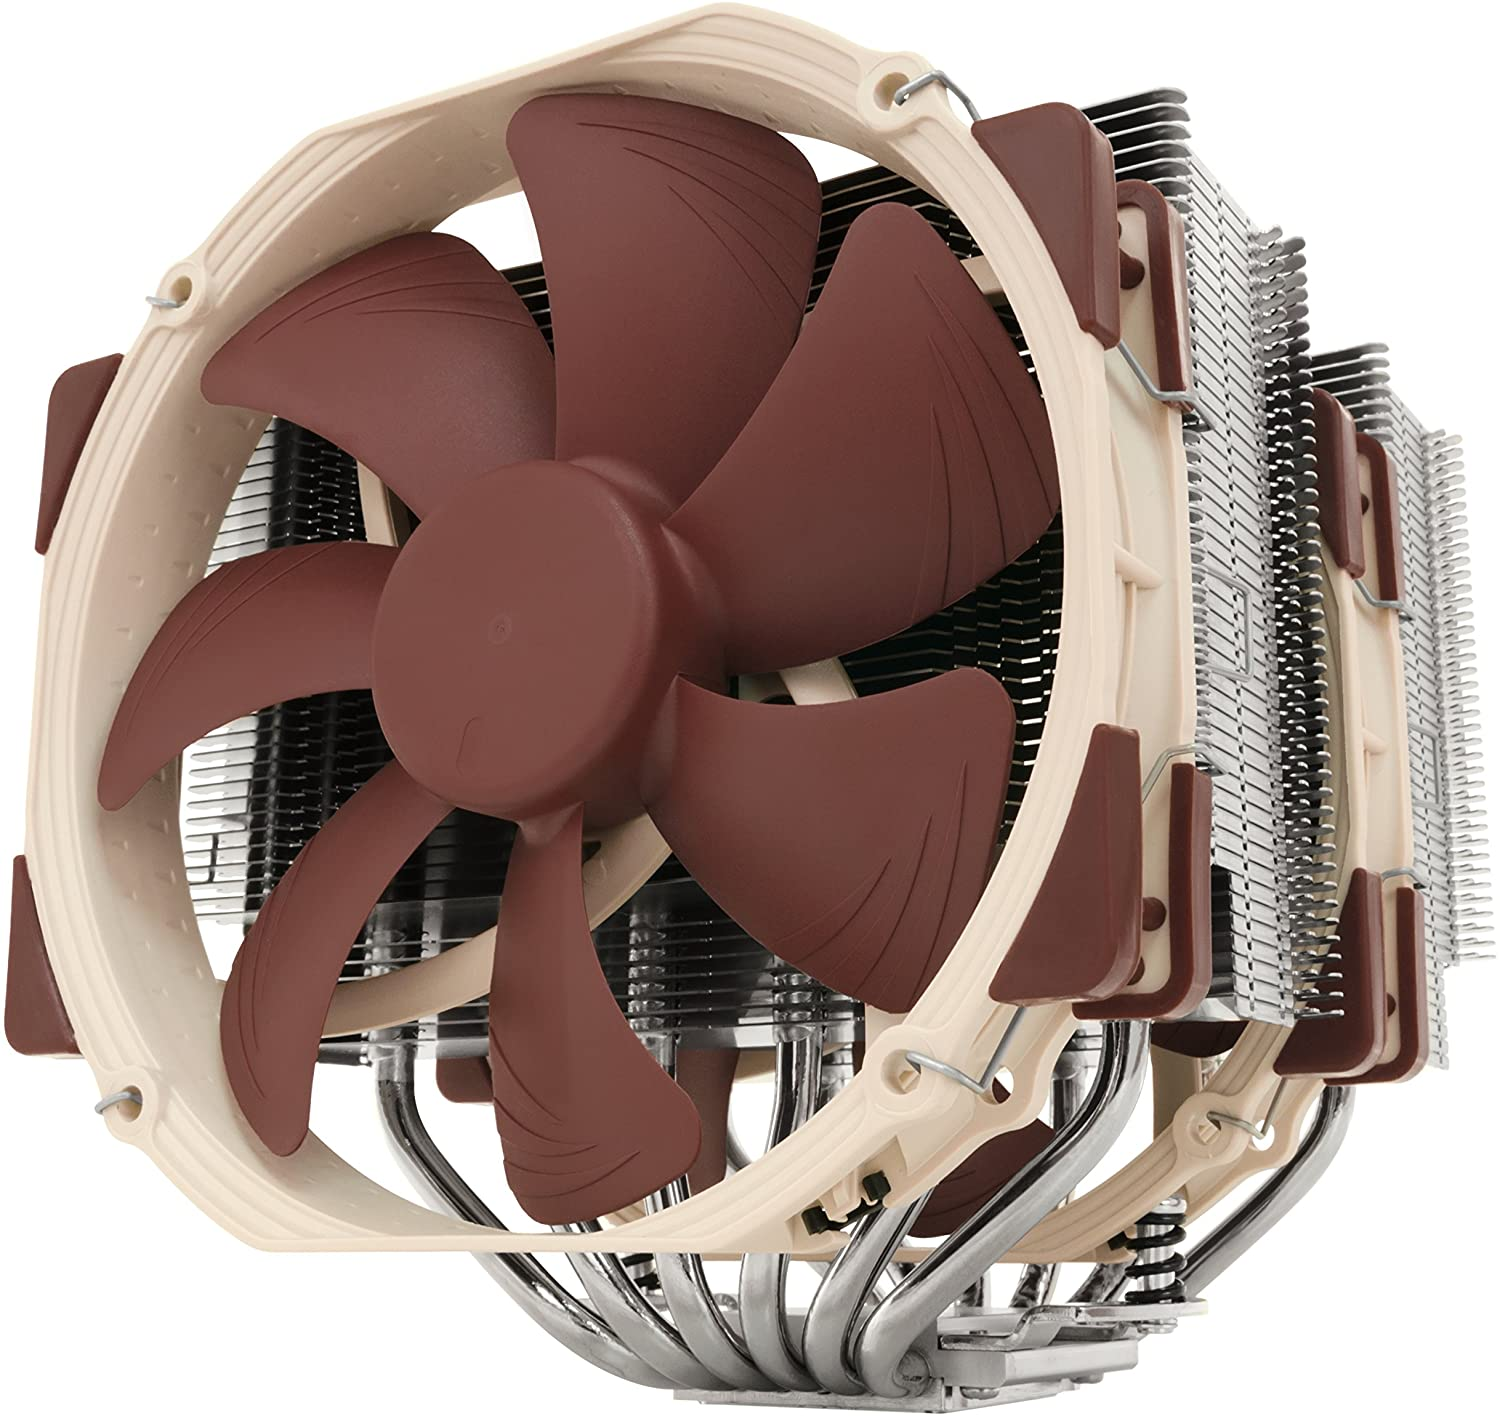 Top 3 Best Cpu Coolers For Threadripper 2 2950x 2920x 2990wx: Reviewed In 2020